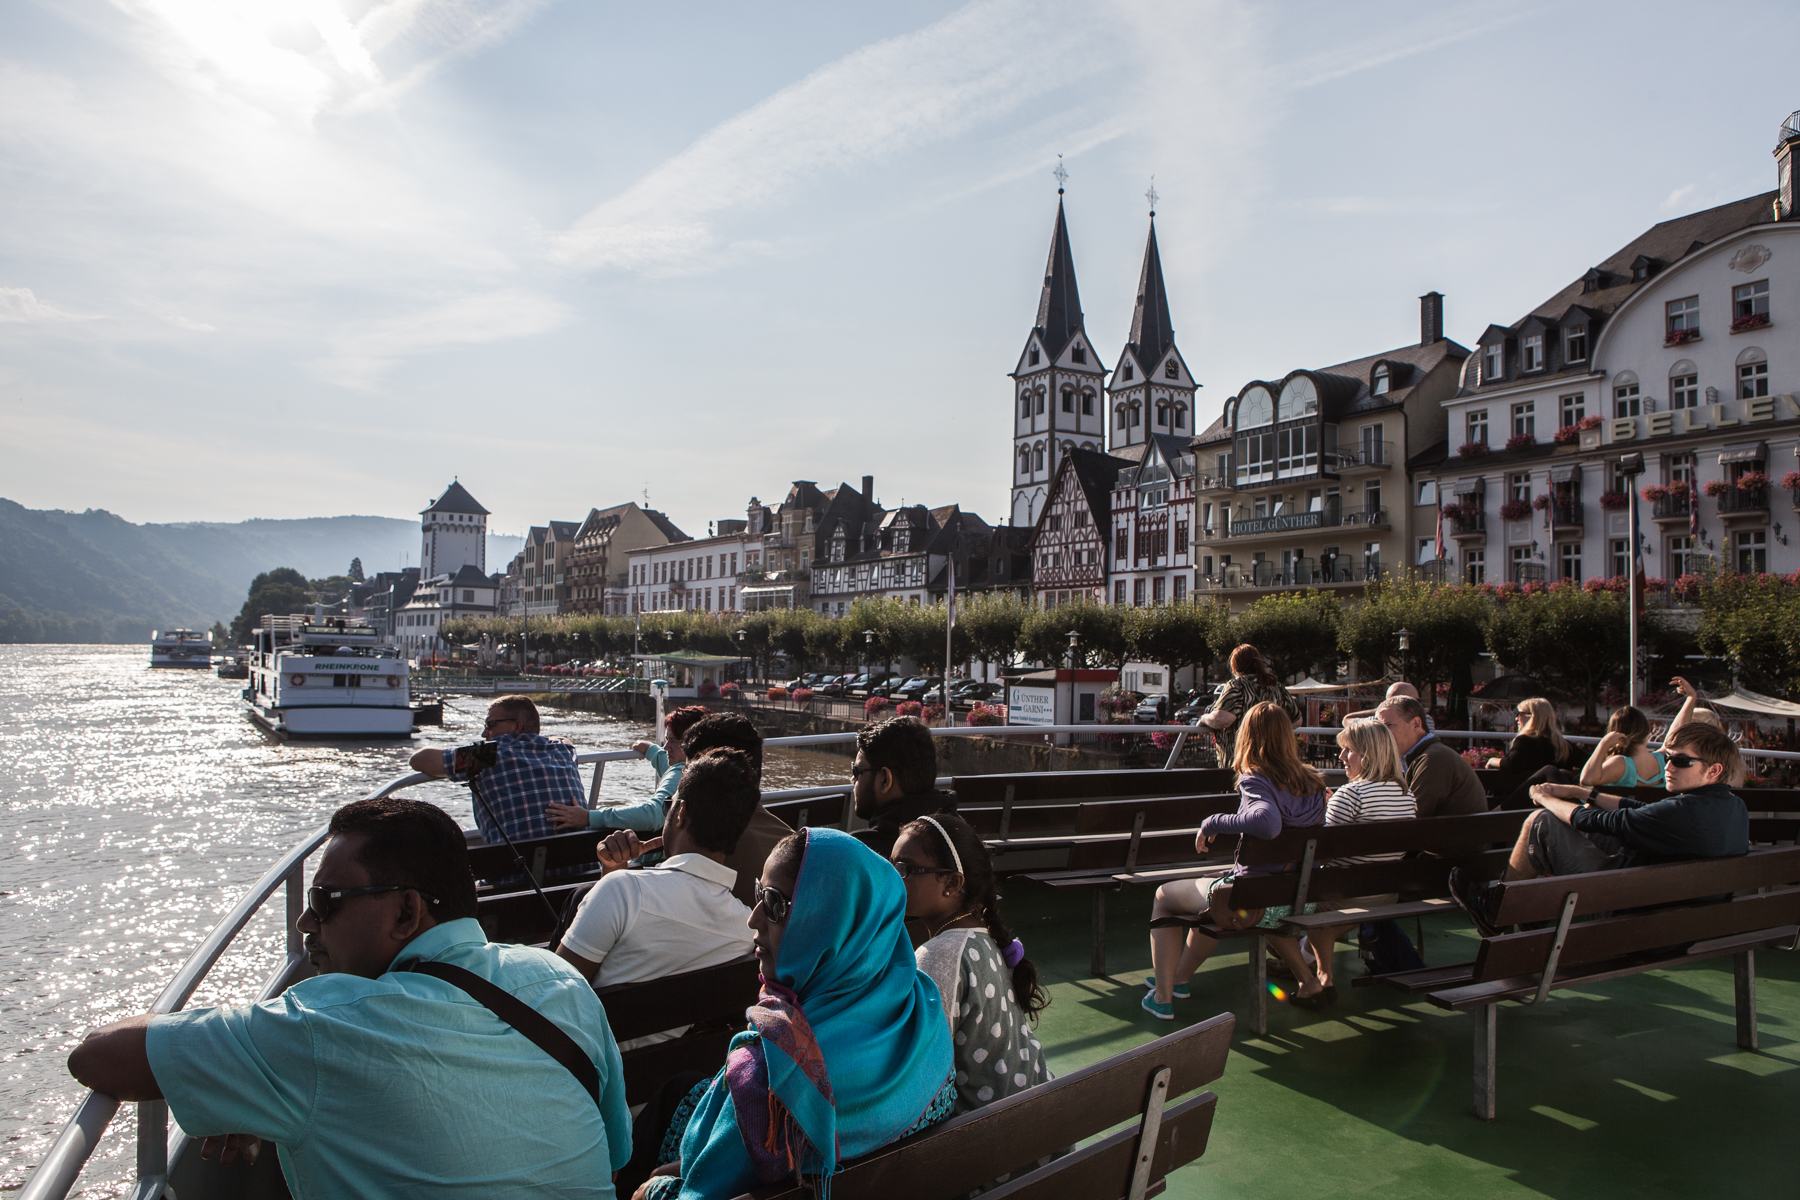 tourists on a riverboat on the river Rhine in Germany